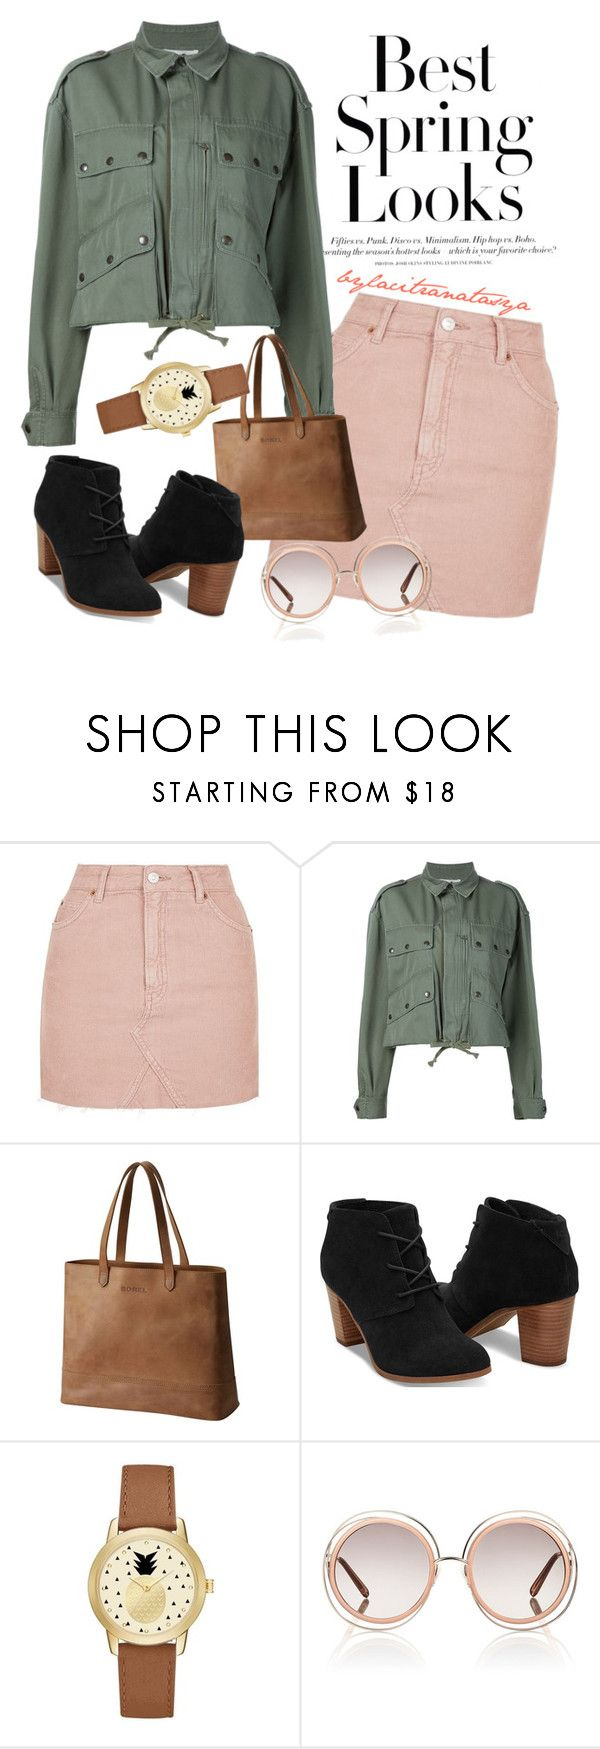 LADY IN THE WOOD by bylacitranatasya on Polyvore featuring Faith Connexion, Topshop, TOMS, SOREL, Jessica Carlyle, Chloé, H&M and vintage